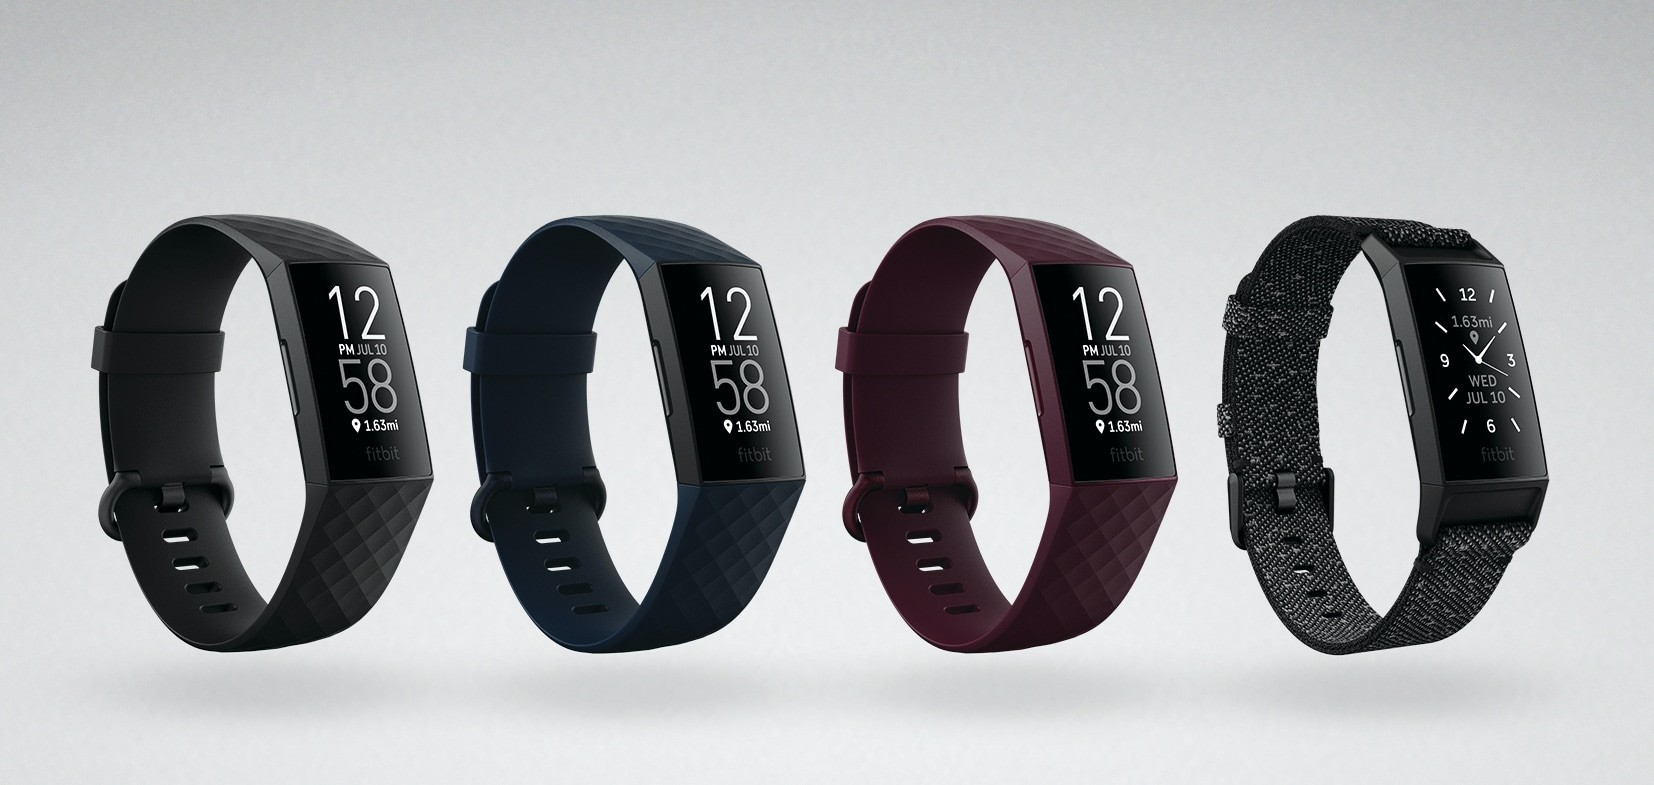 Fitbit Charge 4 with Built-in GPS and 7-day Battery Life Announced